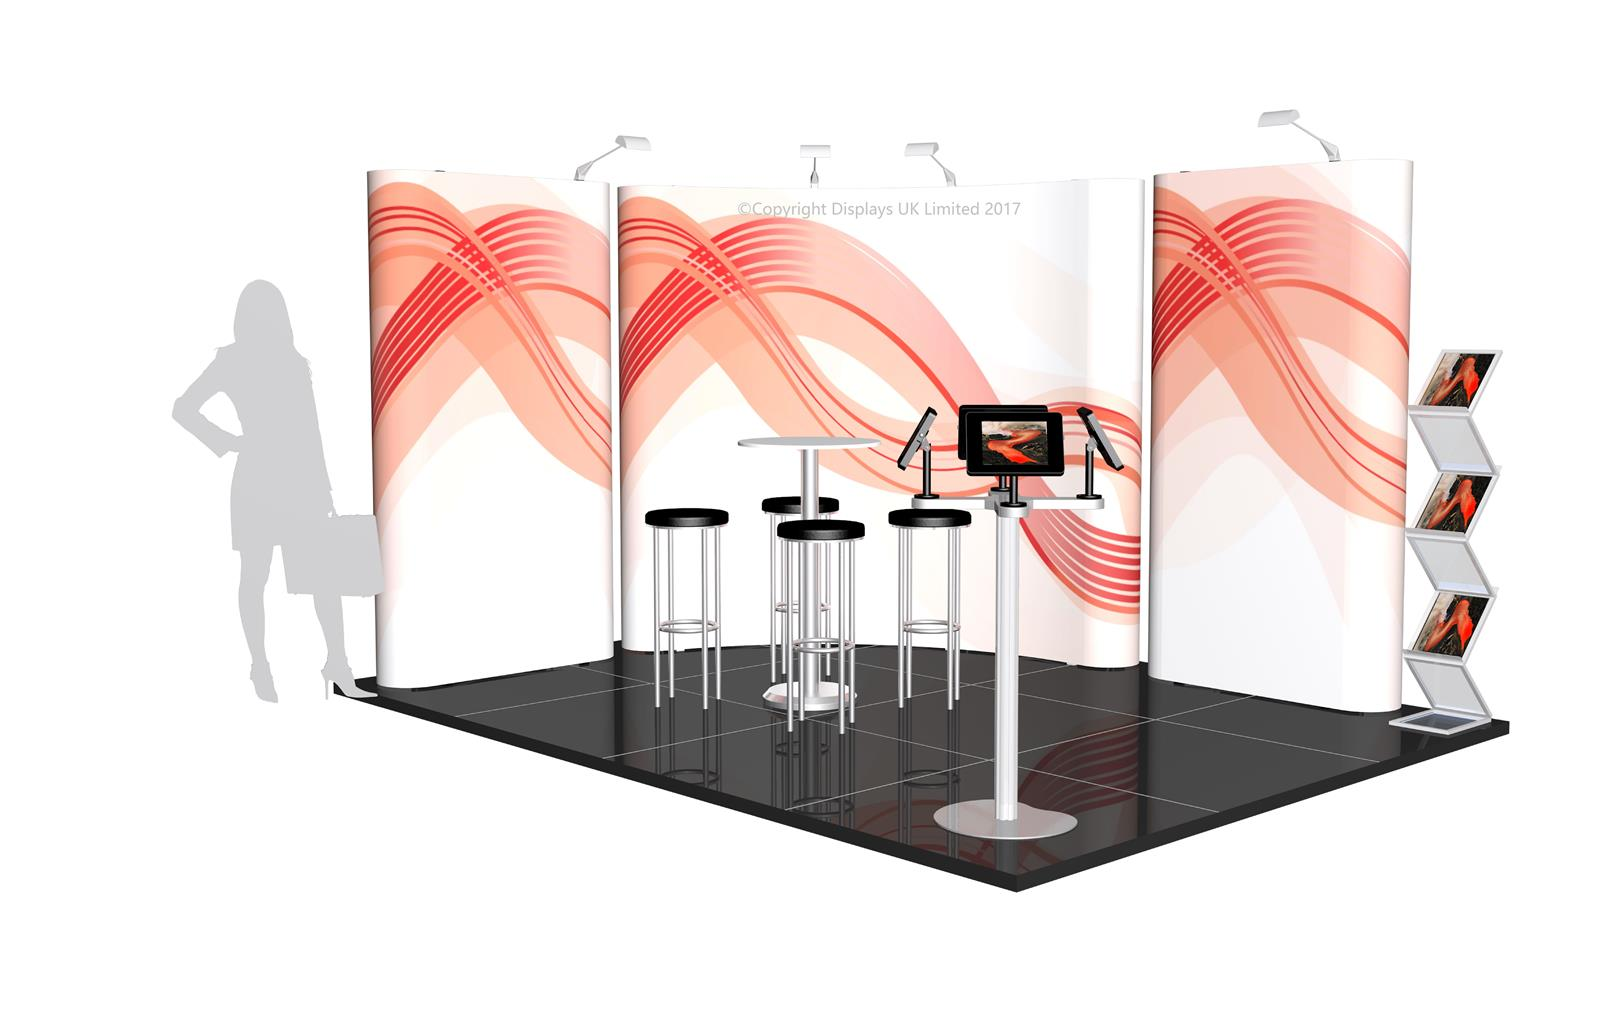 3m x 4m Linked Pop Up Exhibition Stand - Kit 20 - P4x3-2aC